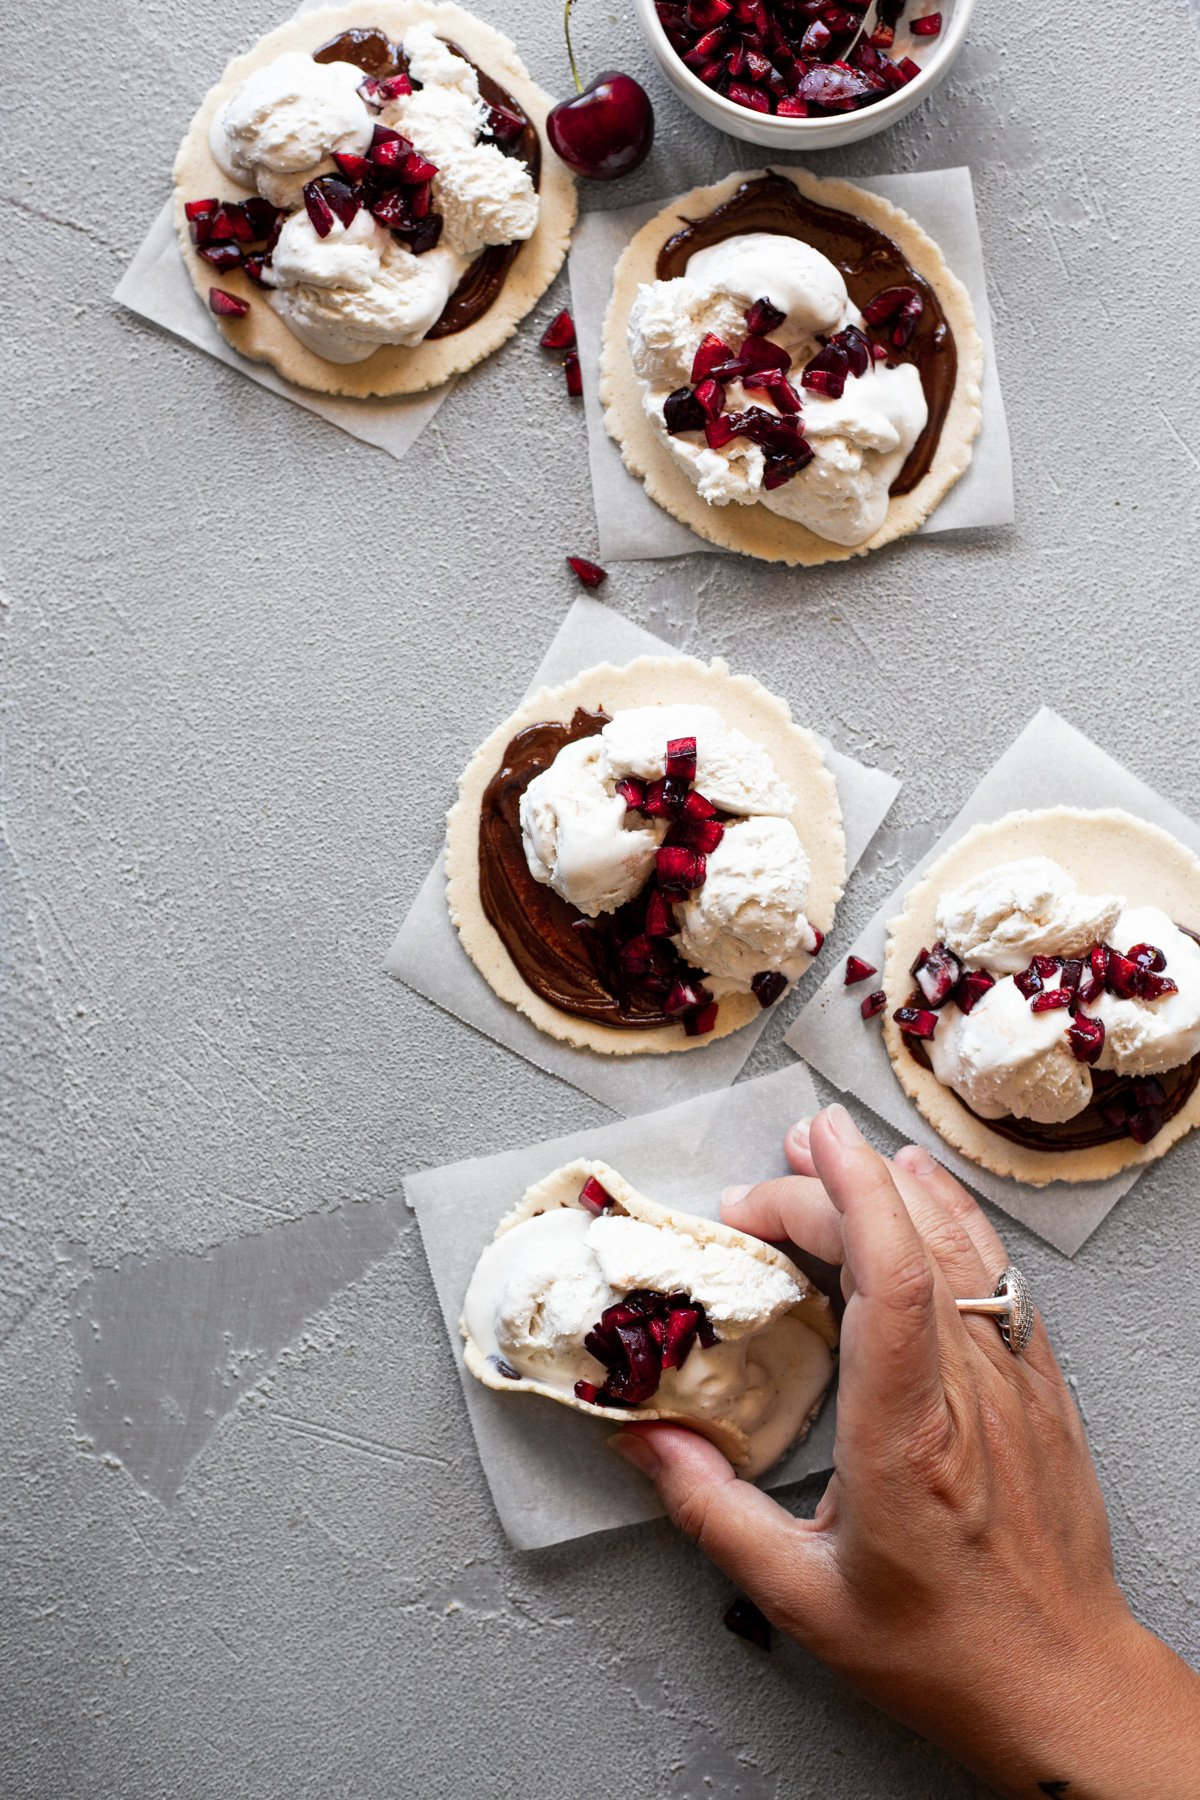 five edible cookie dough dessert tacos with a hand holding one